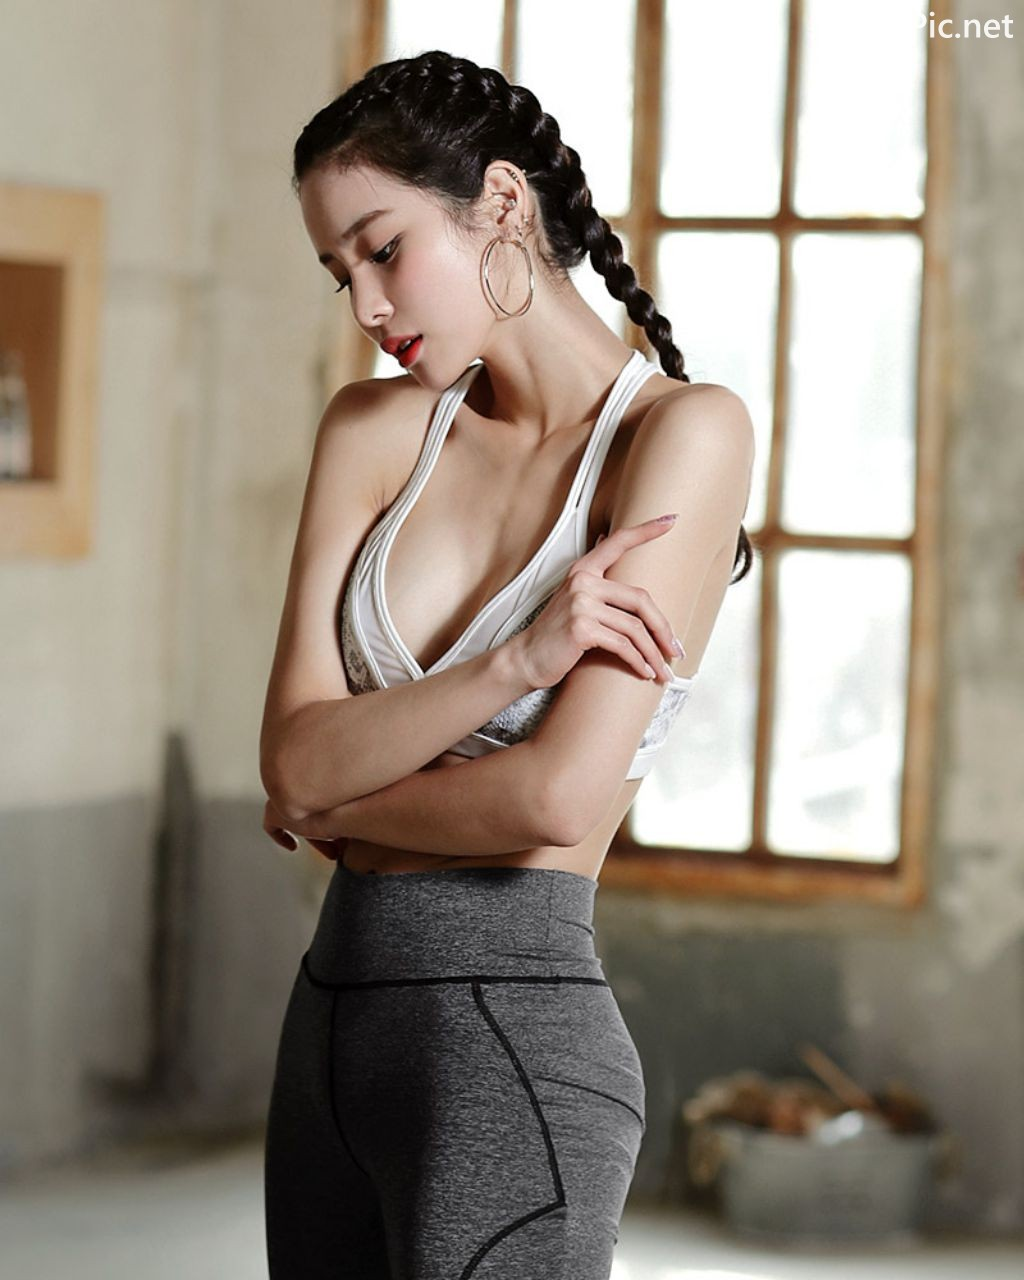 Image-Korean-Fashion-Model-Ju-Woo-Fitness-Set-Collection-TruePic.net- Picture-10